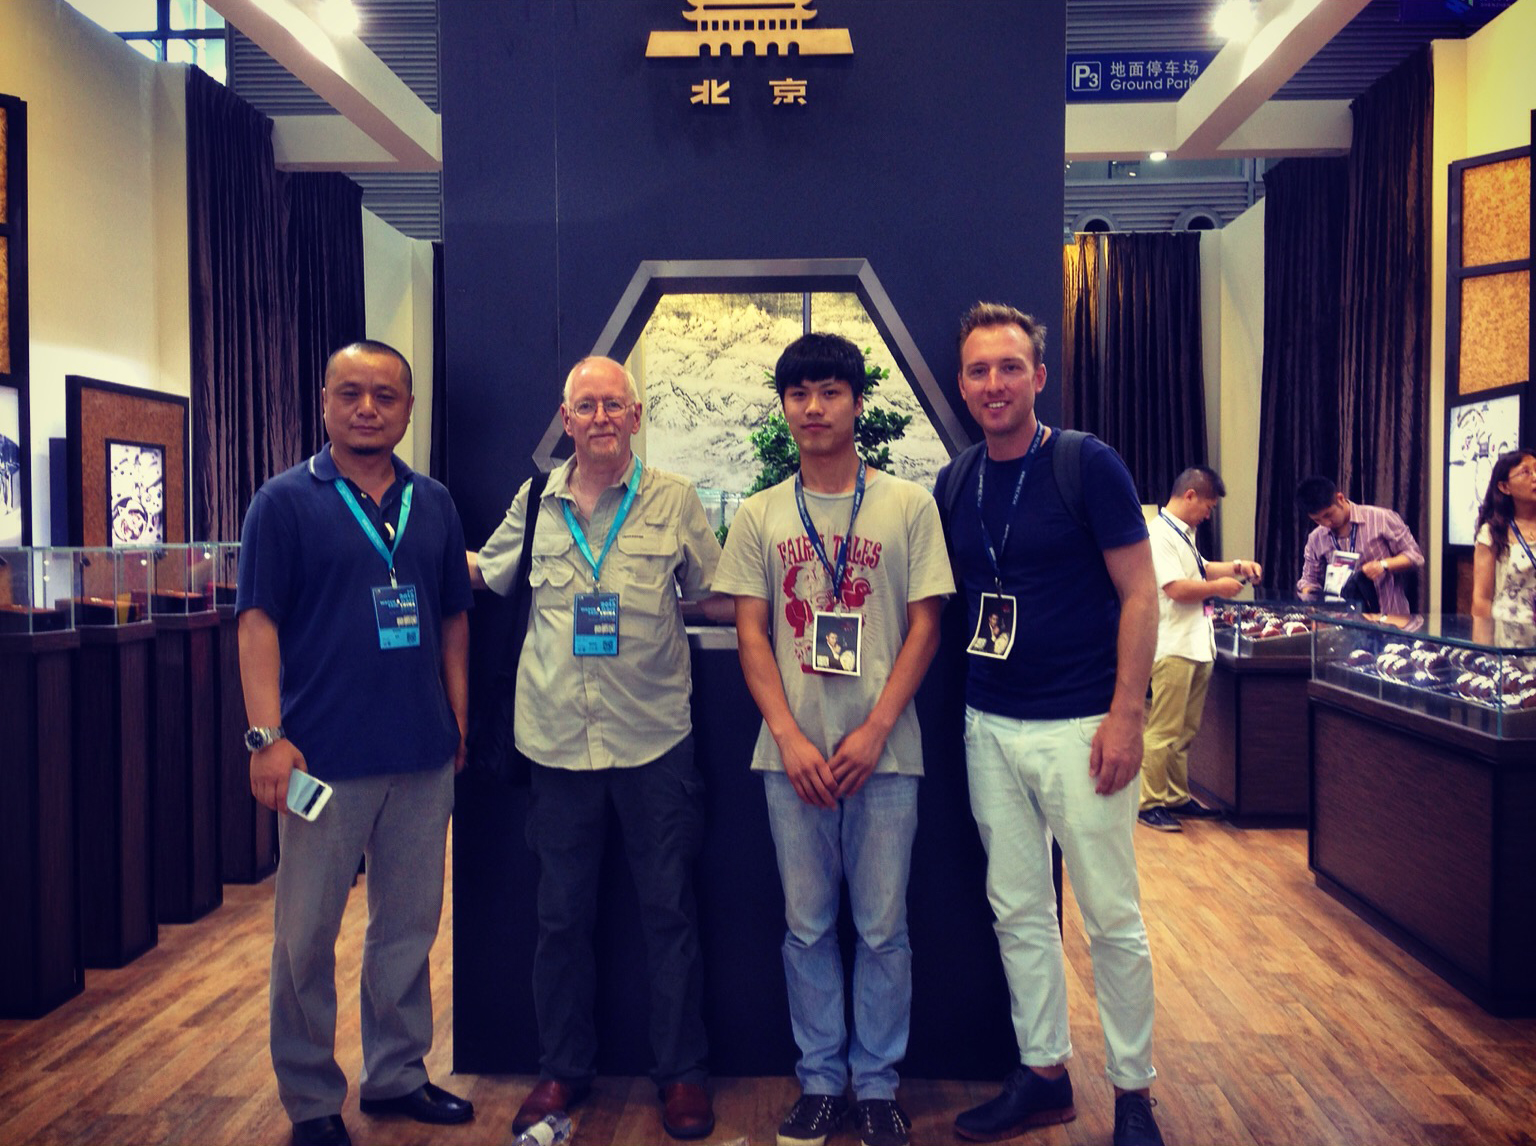 In good company with Mr. Li Wei of the China Horologe Association (left), Mr. Ron Good, probably the largest collector of vintage Chinese watches, and Zhao Zhen Ling, R&D at Beijing Watch Factory.